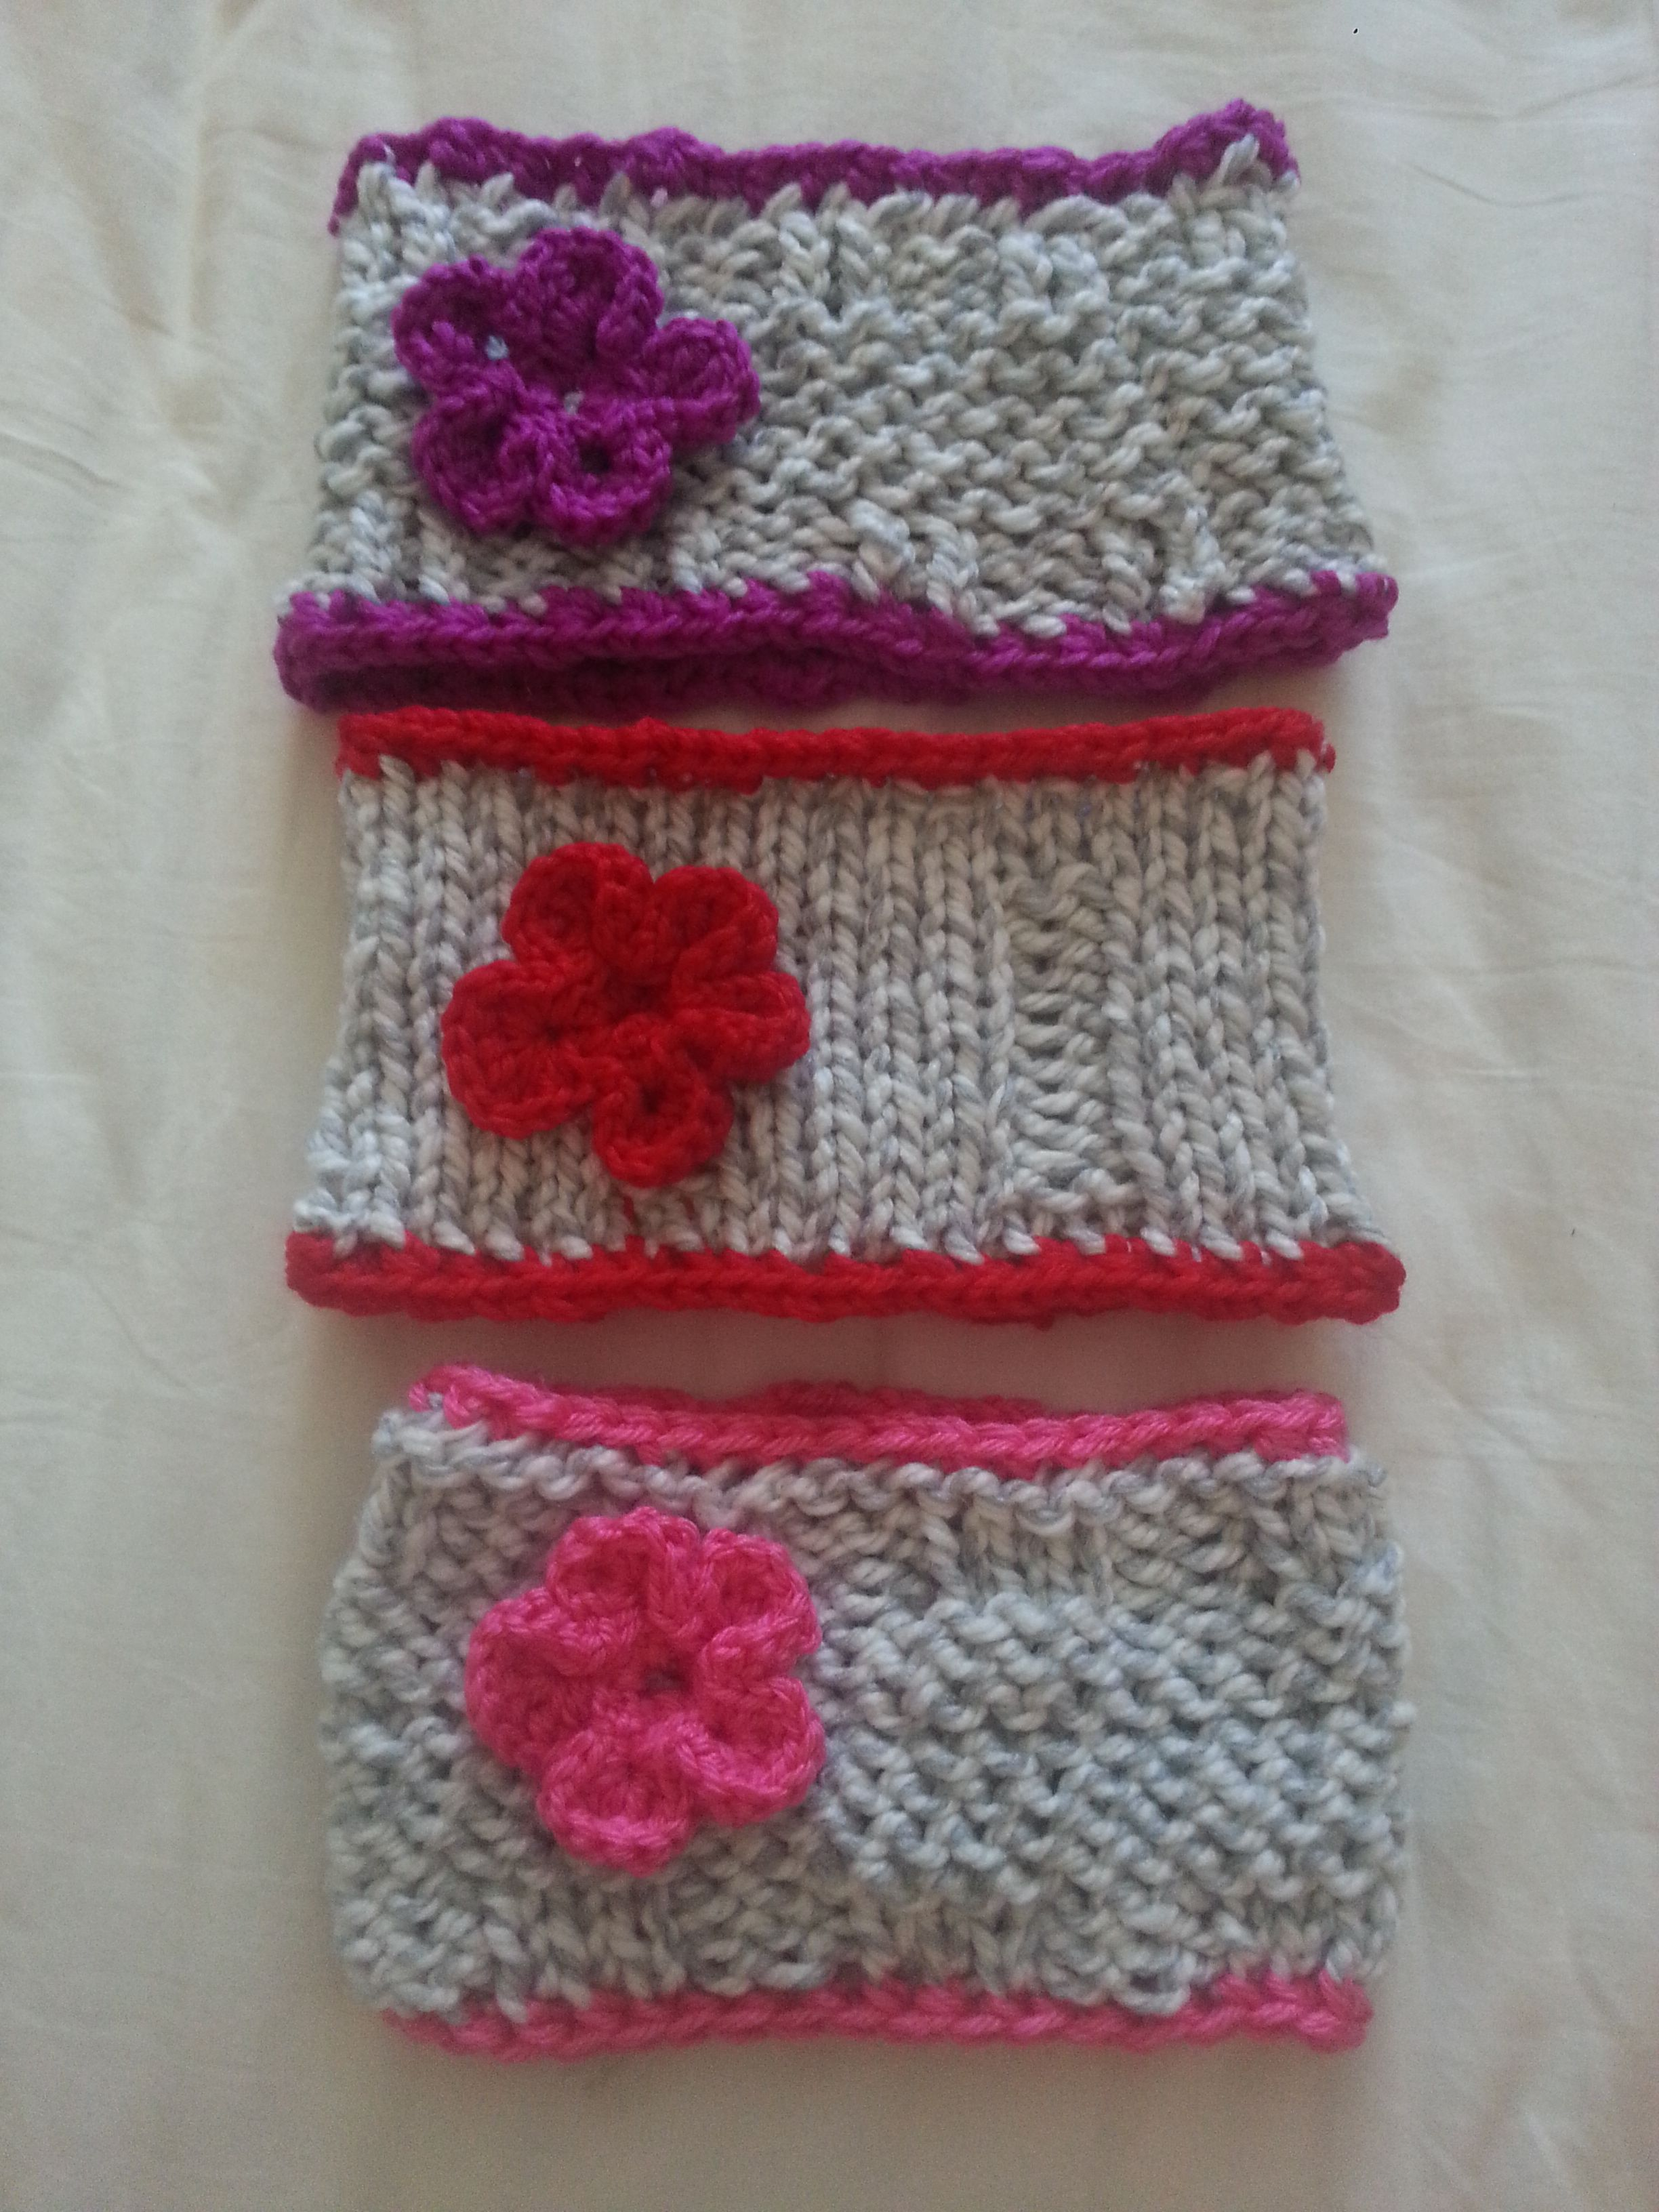 Check Out These Cute Ear Warmers I Made For My Nieces For Christmas